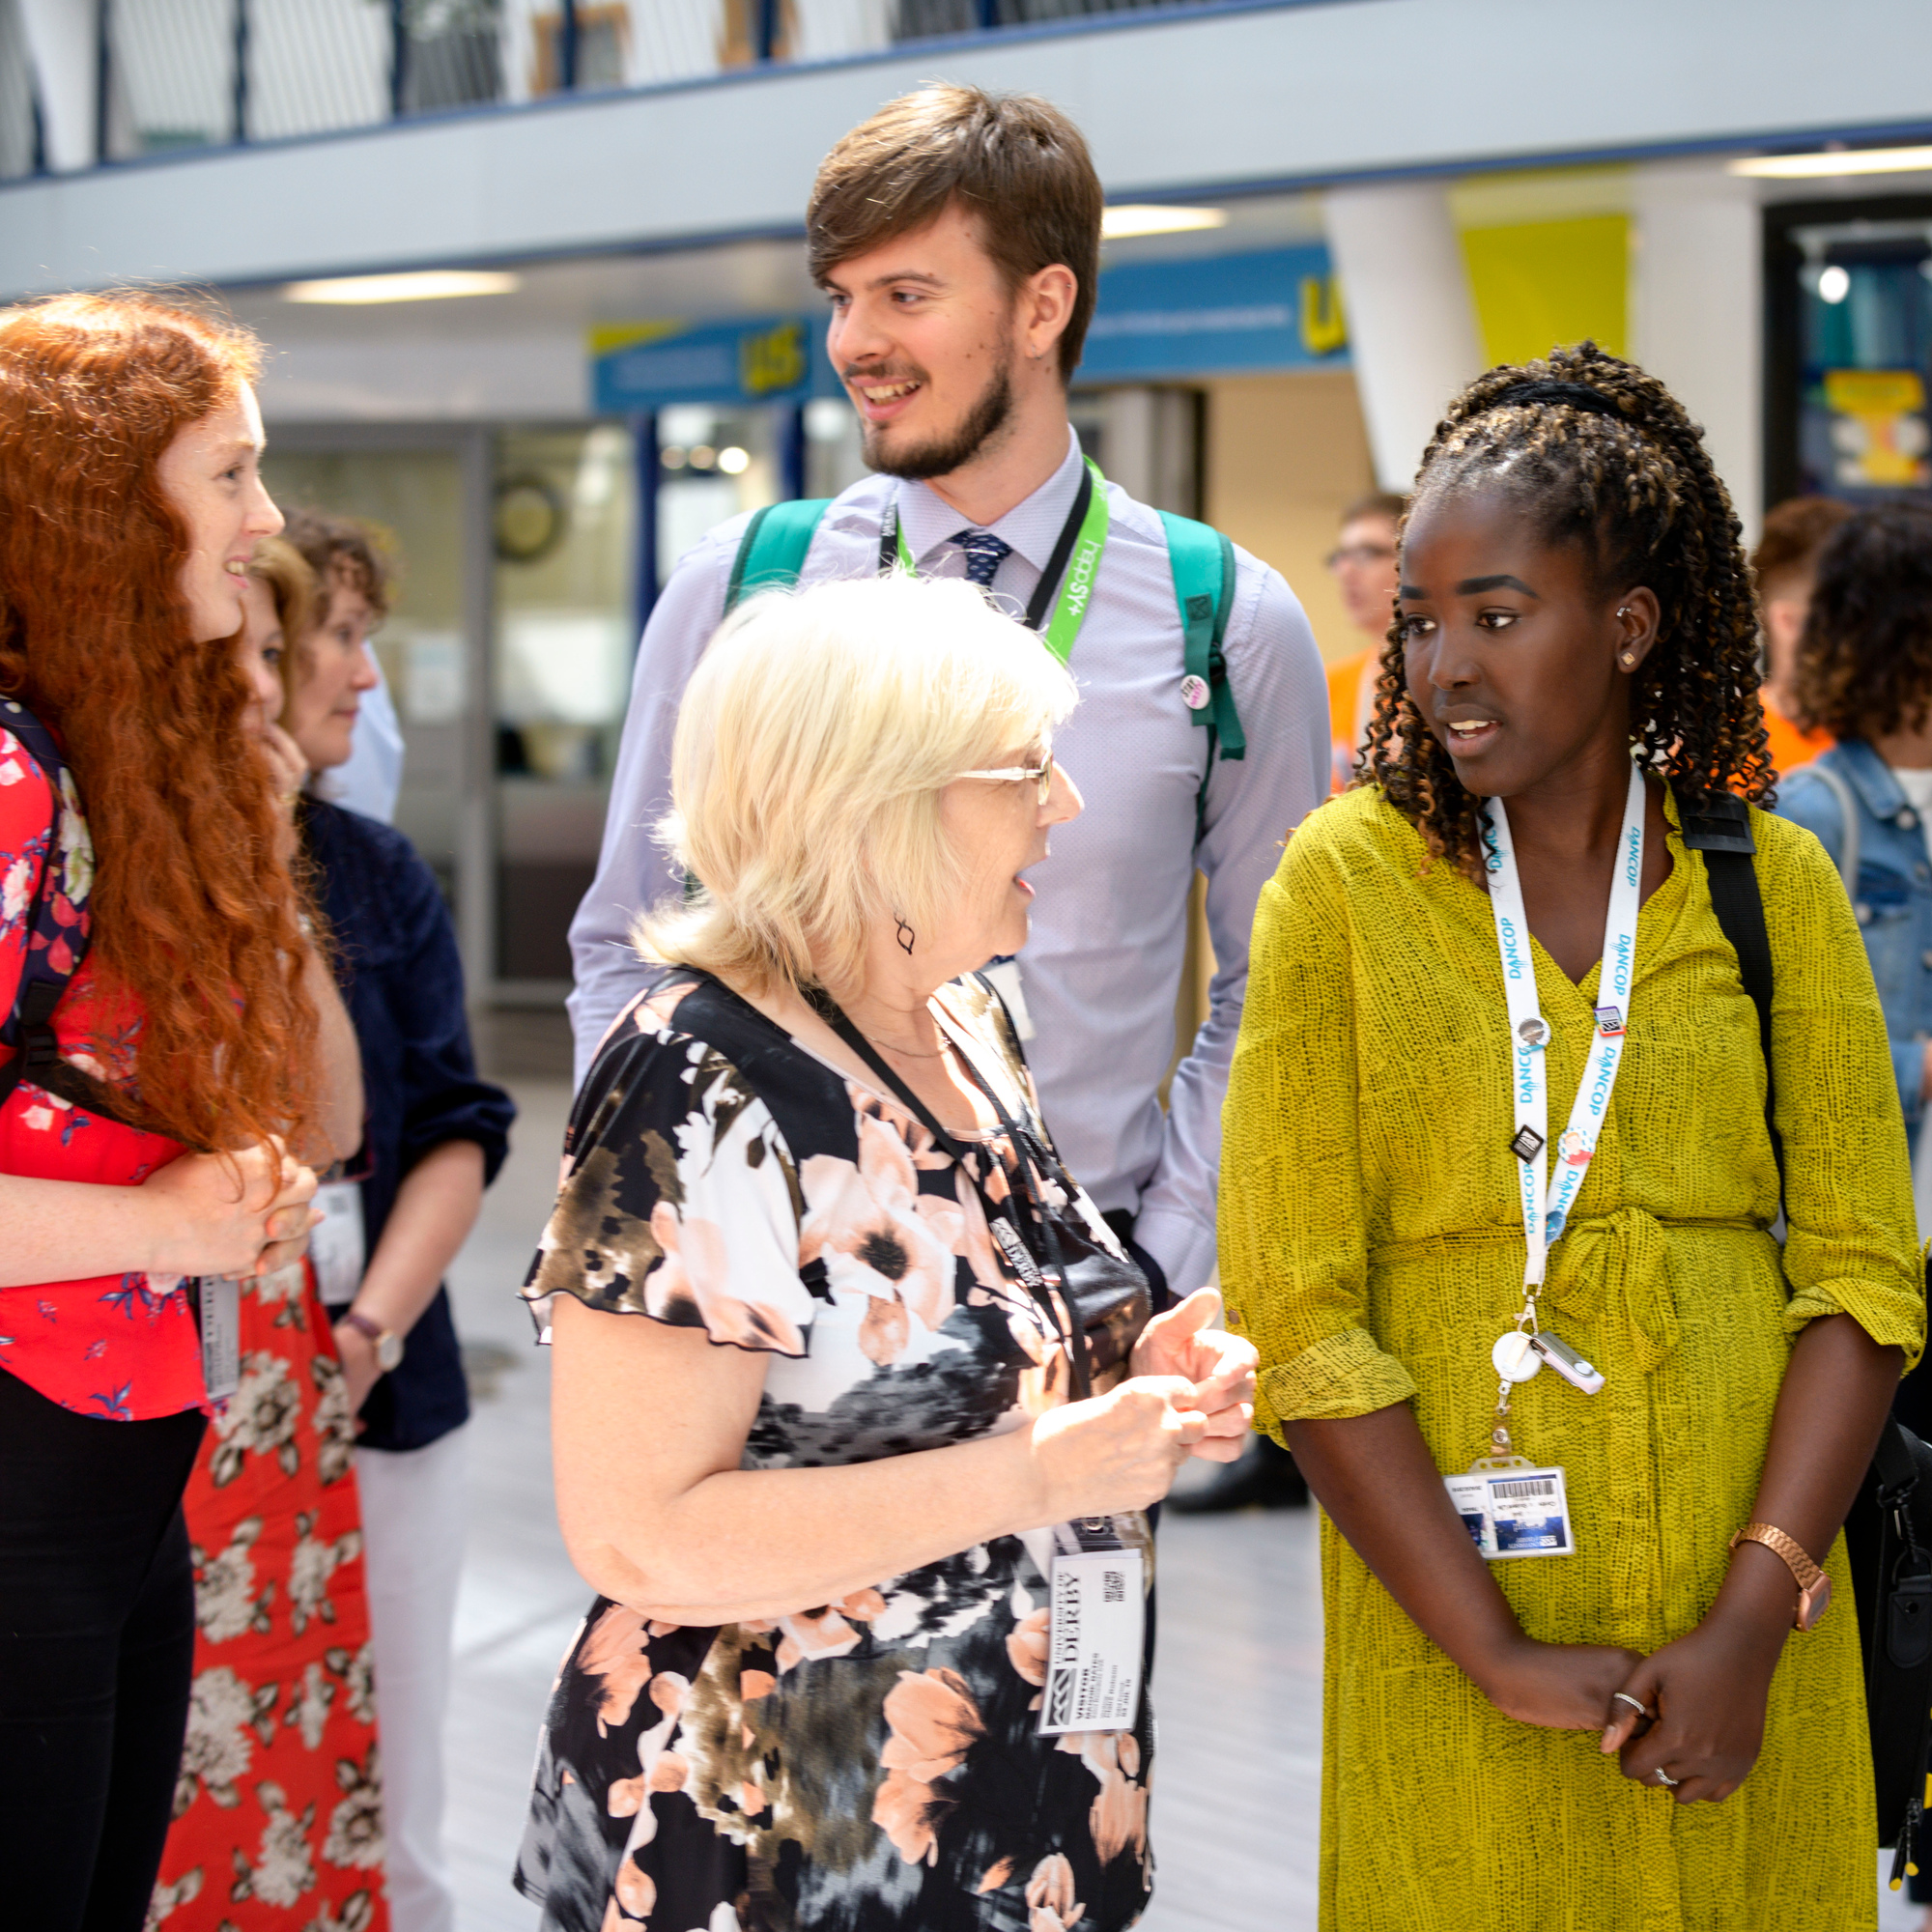 A careers advisors speaks to a University staff member with two people in the background of the Atrium.